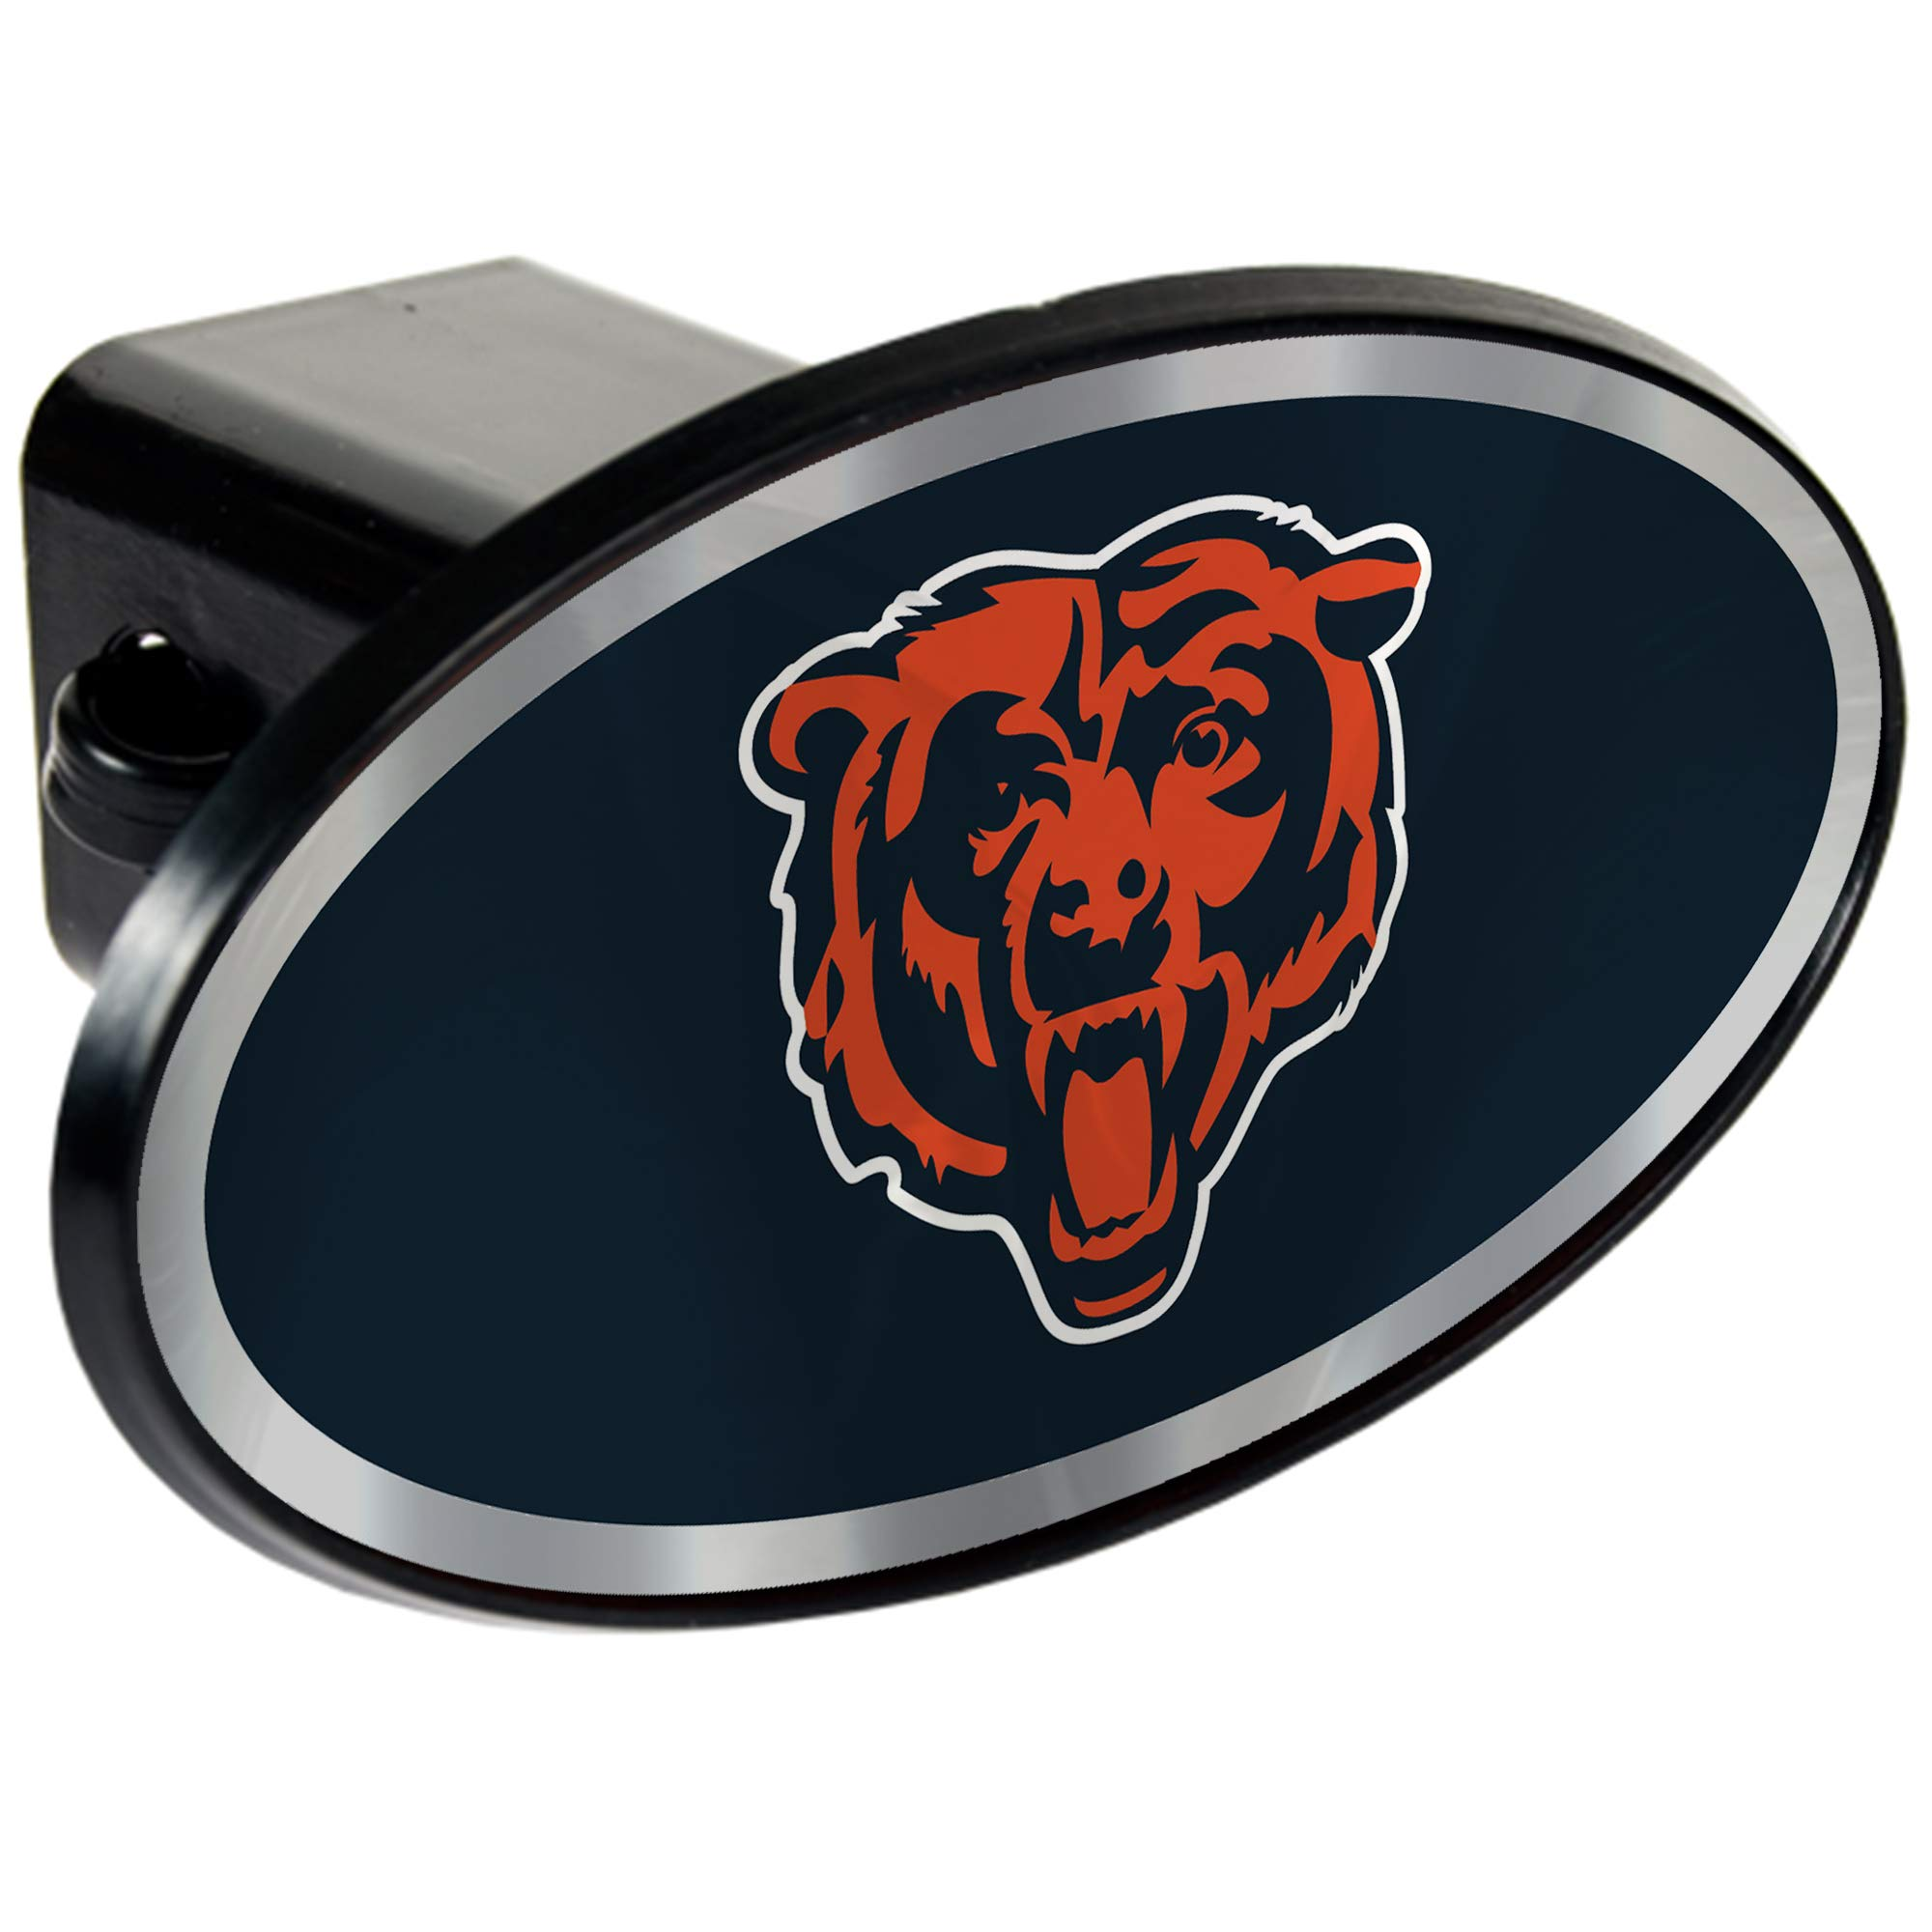 Chicago Bears 2'' NFL Trailer Hitch Receiver Cover - ABS Plastic by Quality Hitch Covers